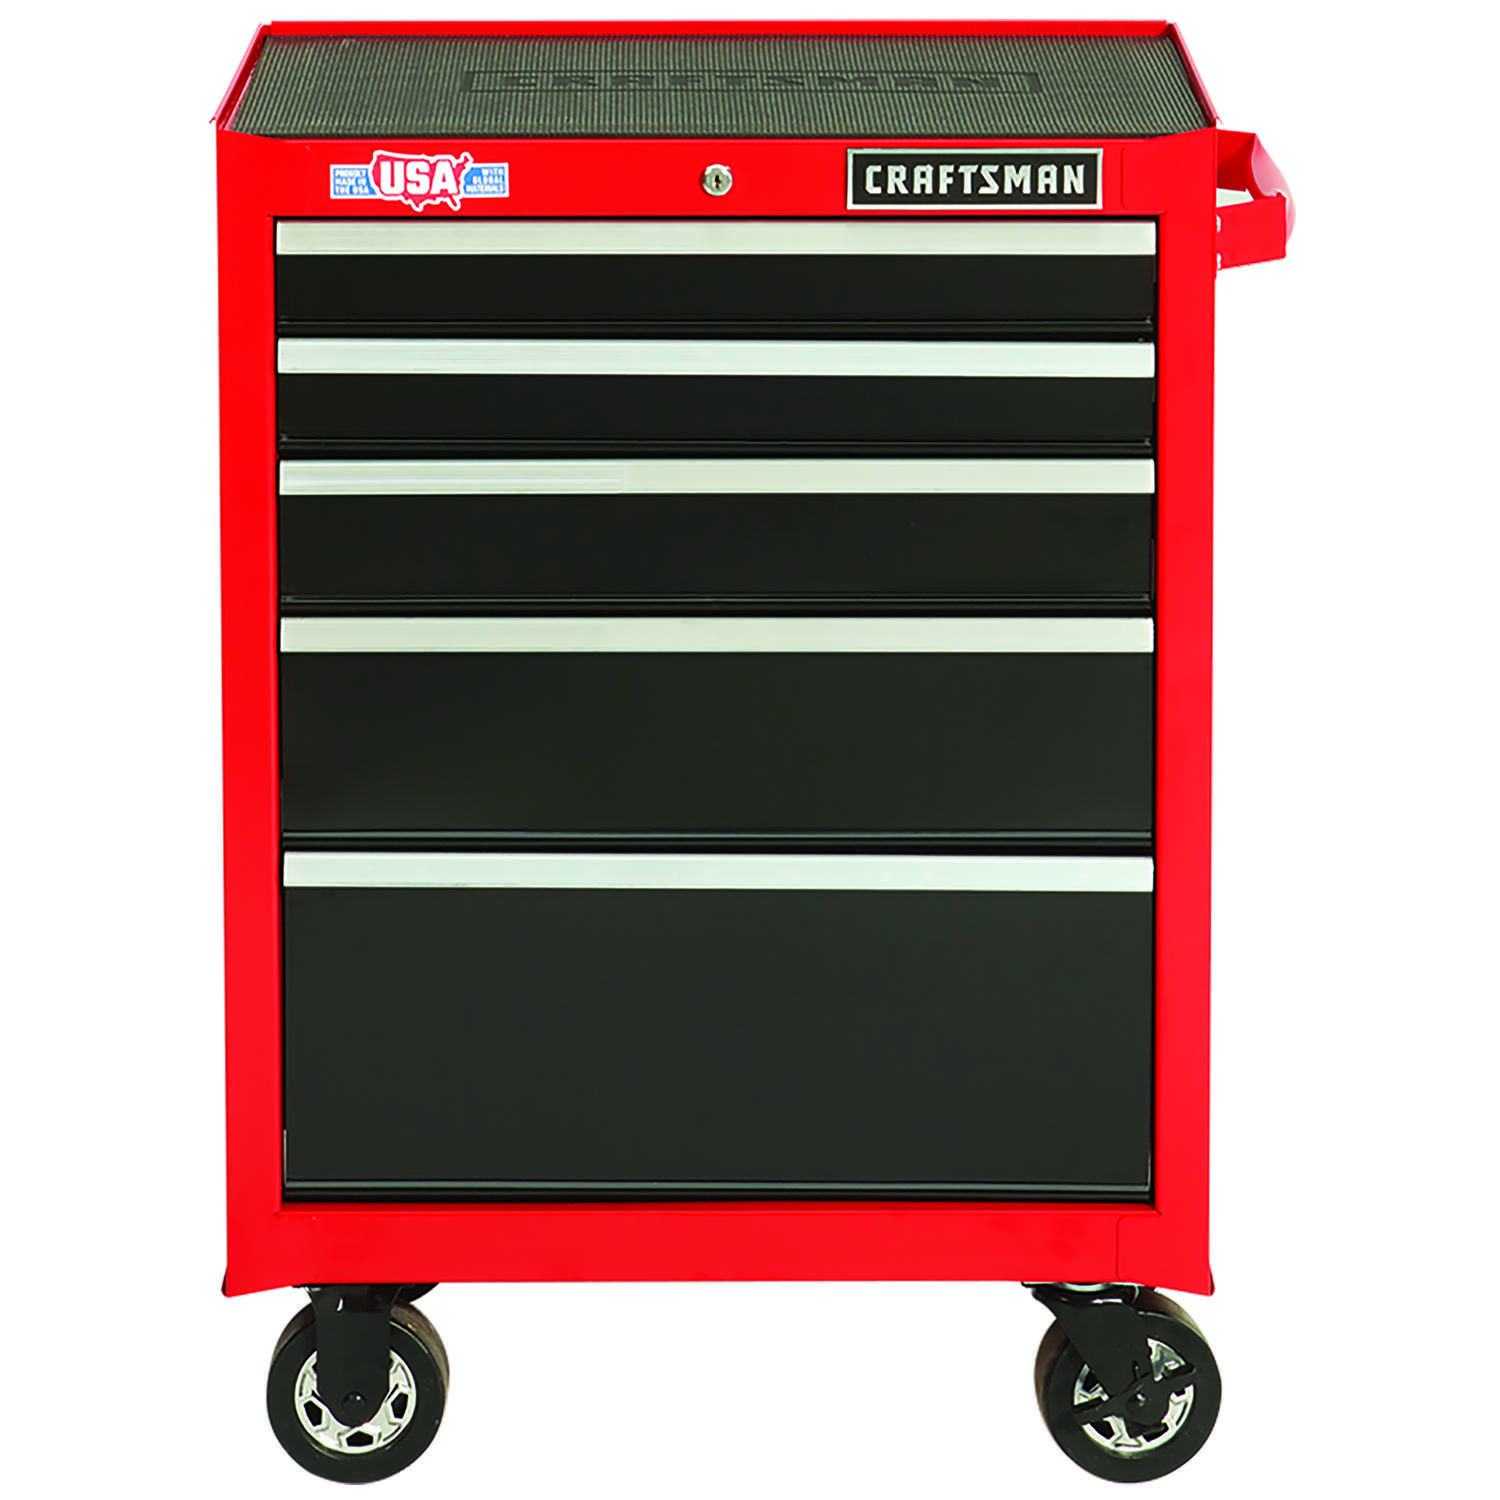 Craftsman 26.5 in. 5 drawer Metal Rolling Tool Cabinet 37.5 in. H x 18 in. D Black/Red